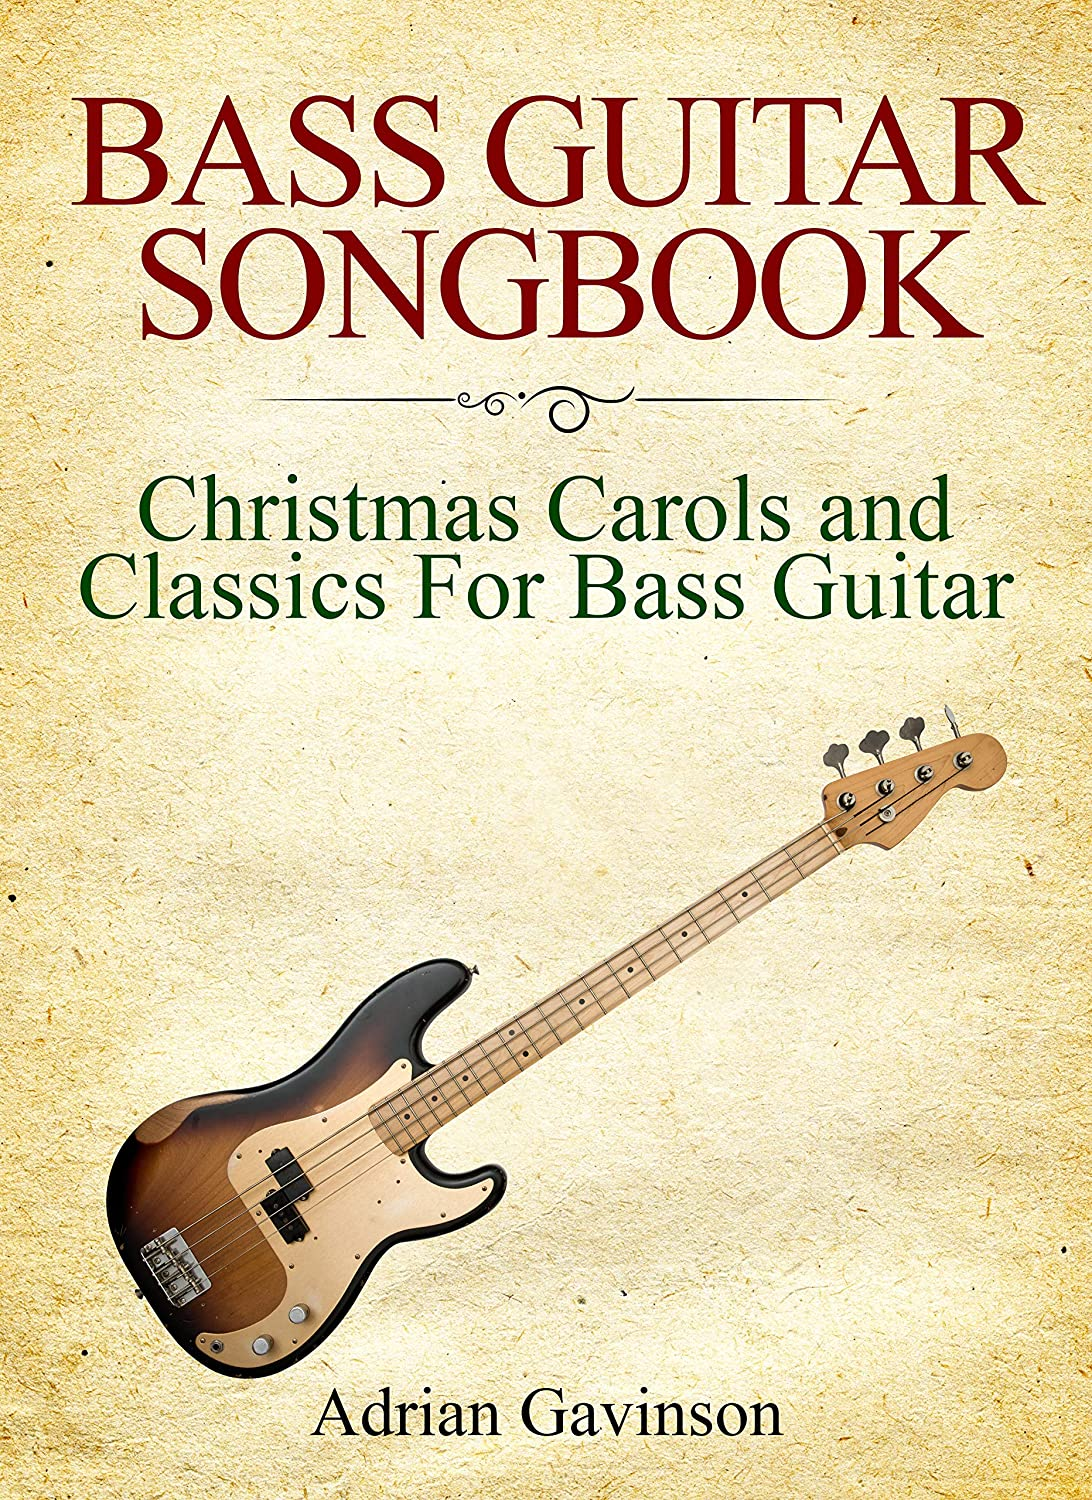 Bass Guitar Songbook: Christmas Carols and Classics for Bass ...